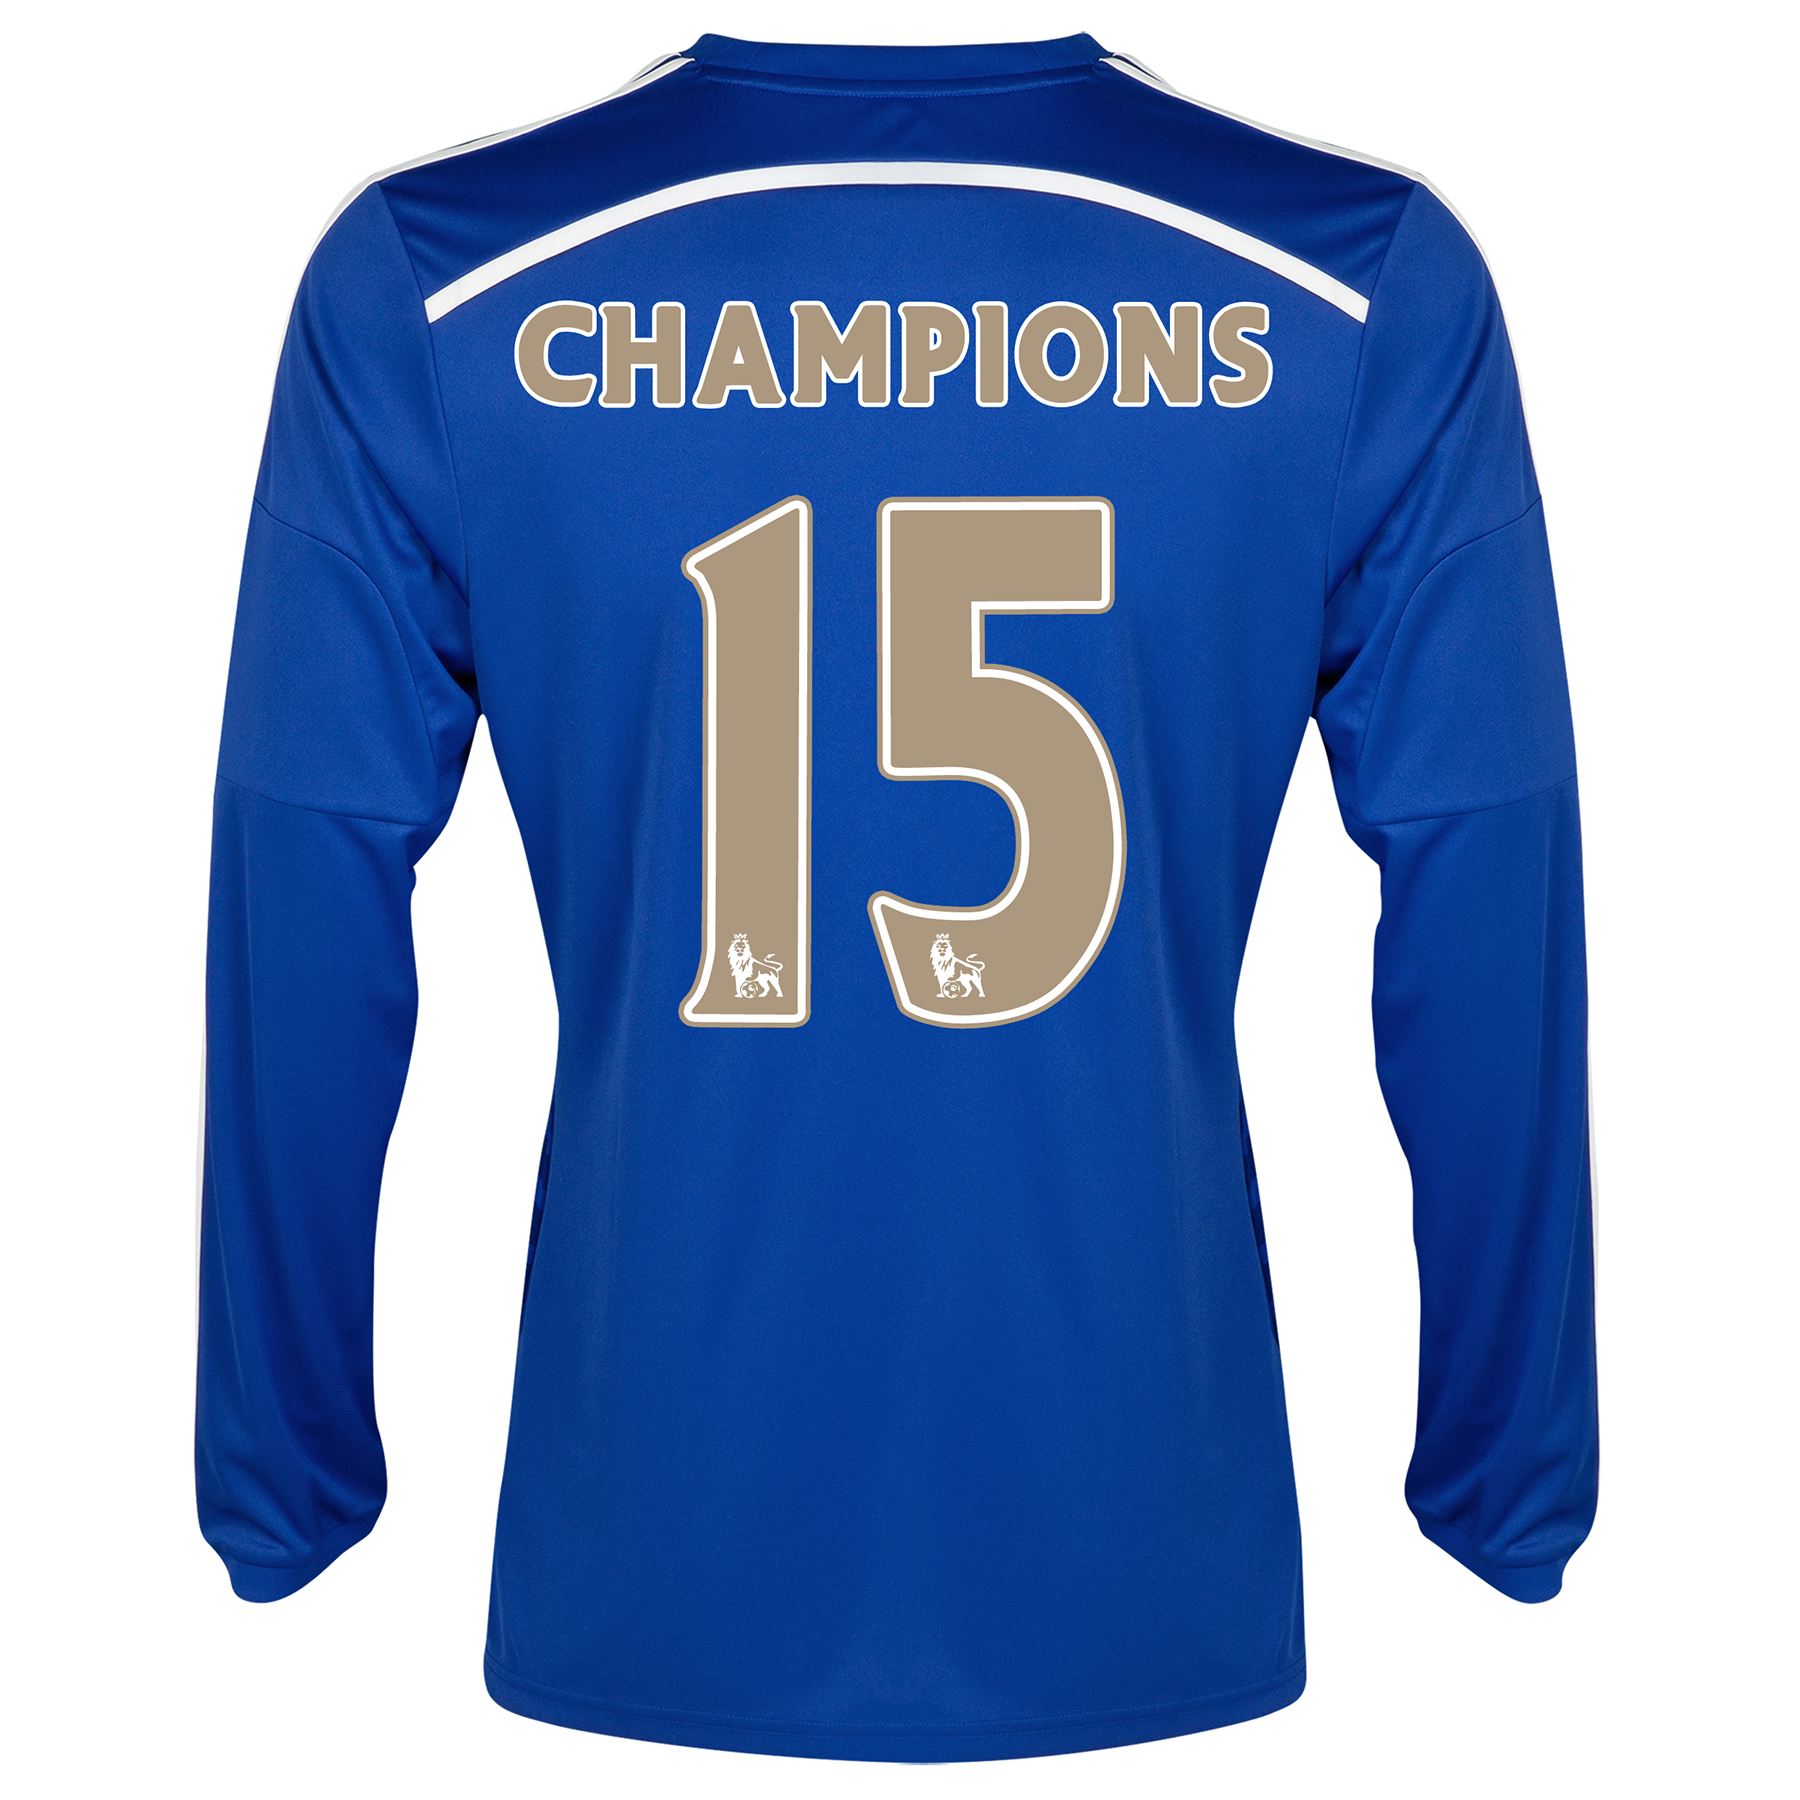 Chelsea Champions 2015 Home Shirt - Long Sleeve